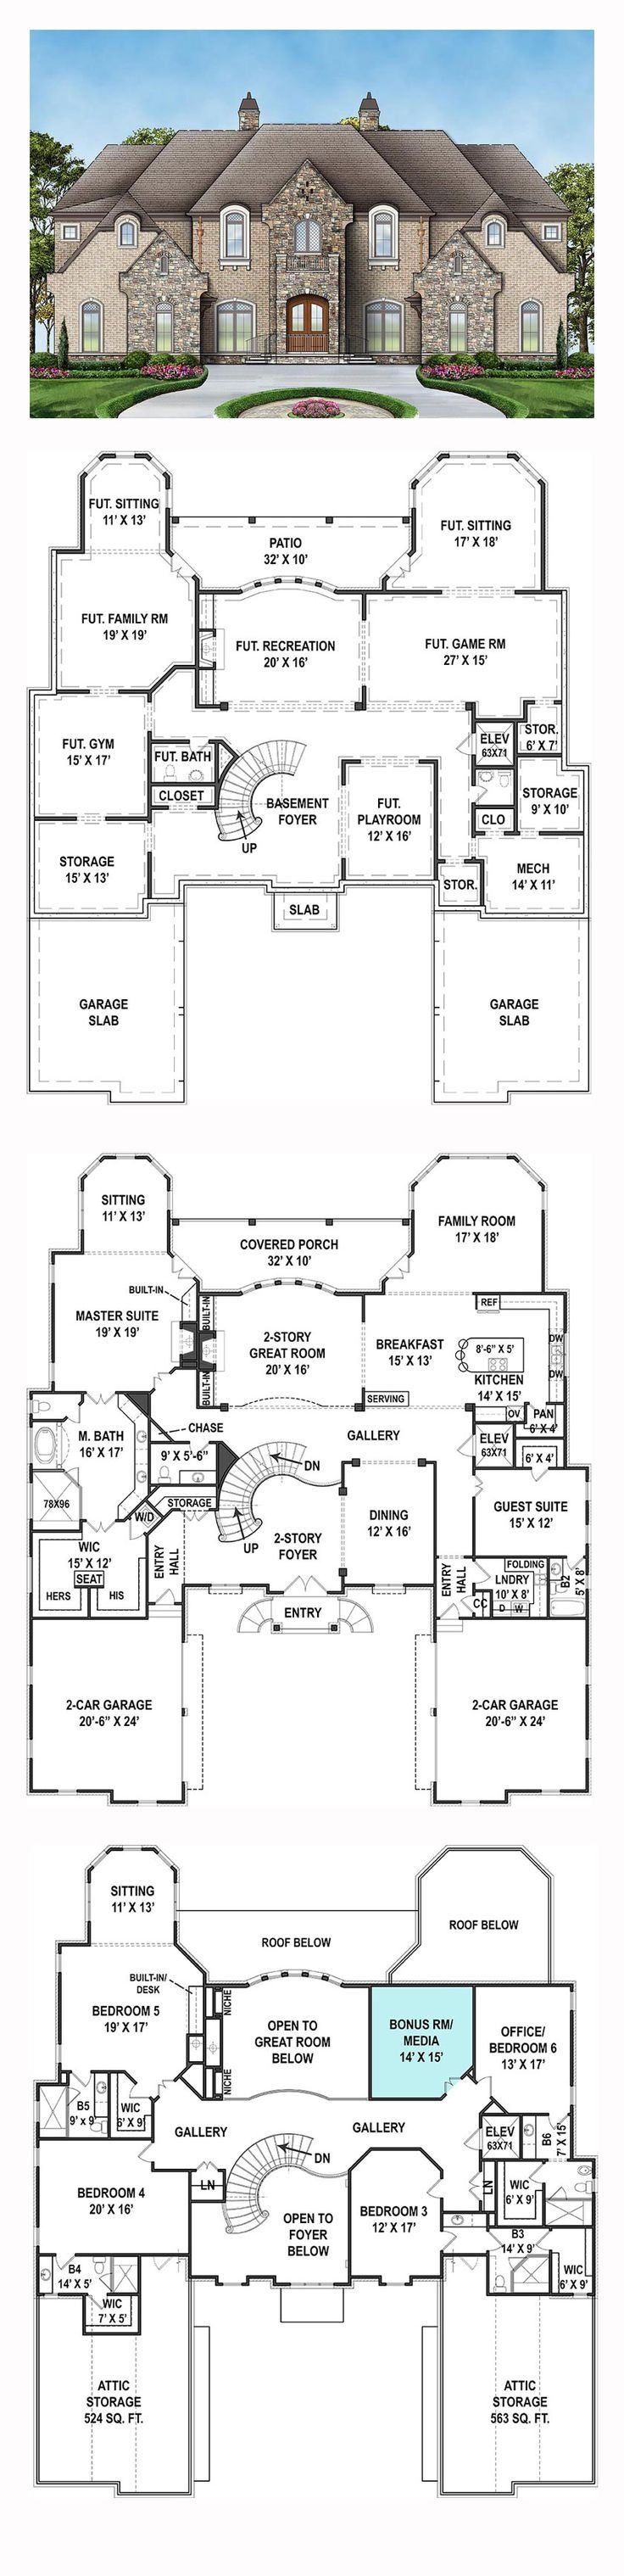 New House Plan 72171 Total Living